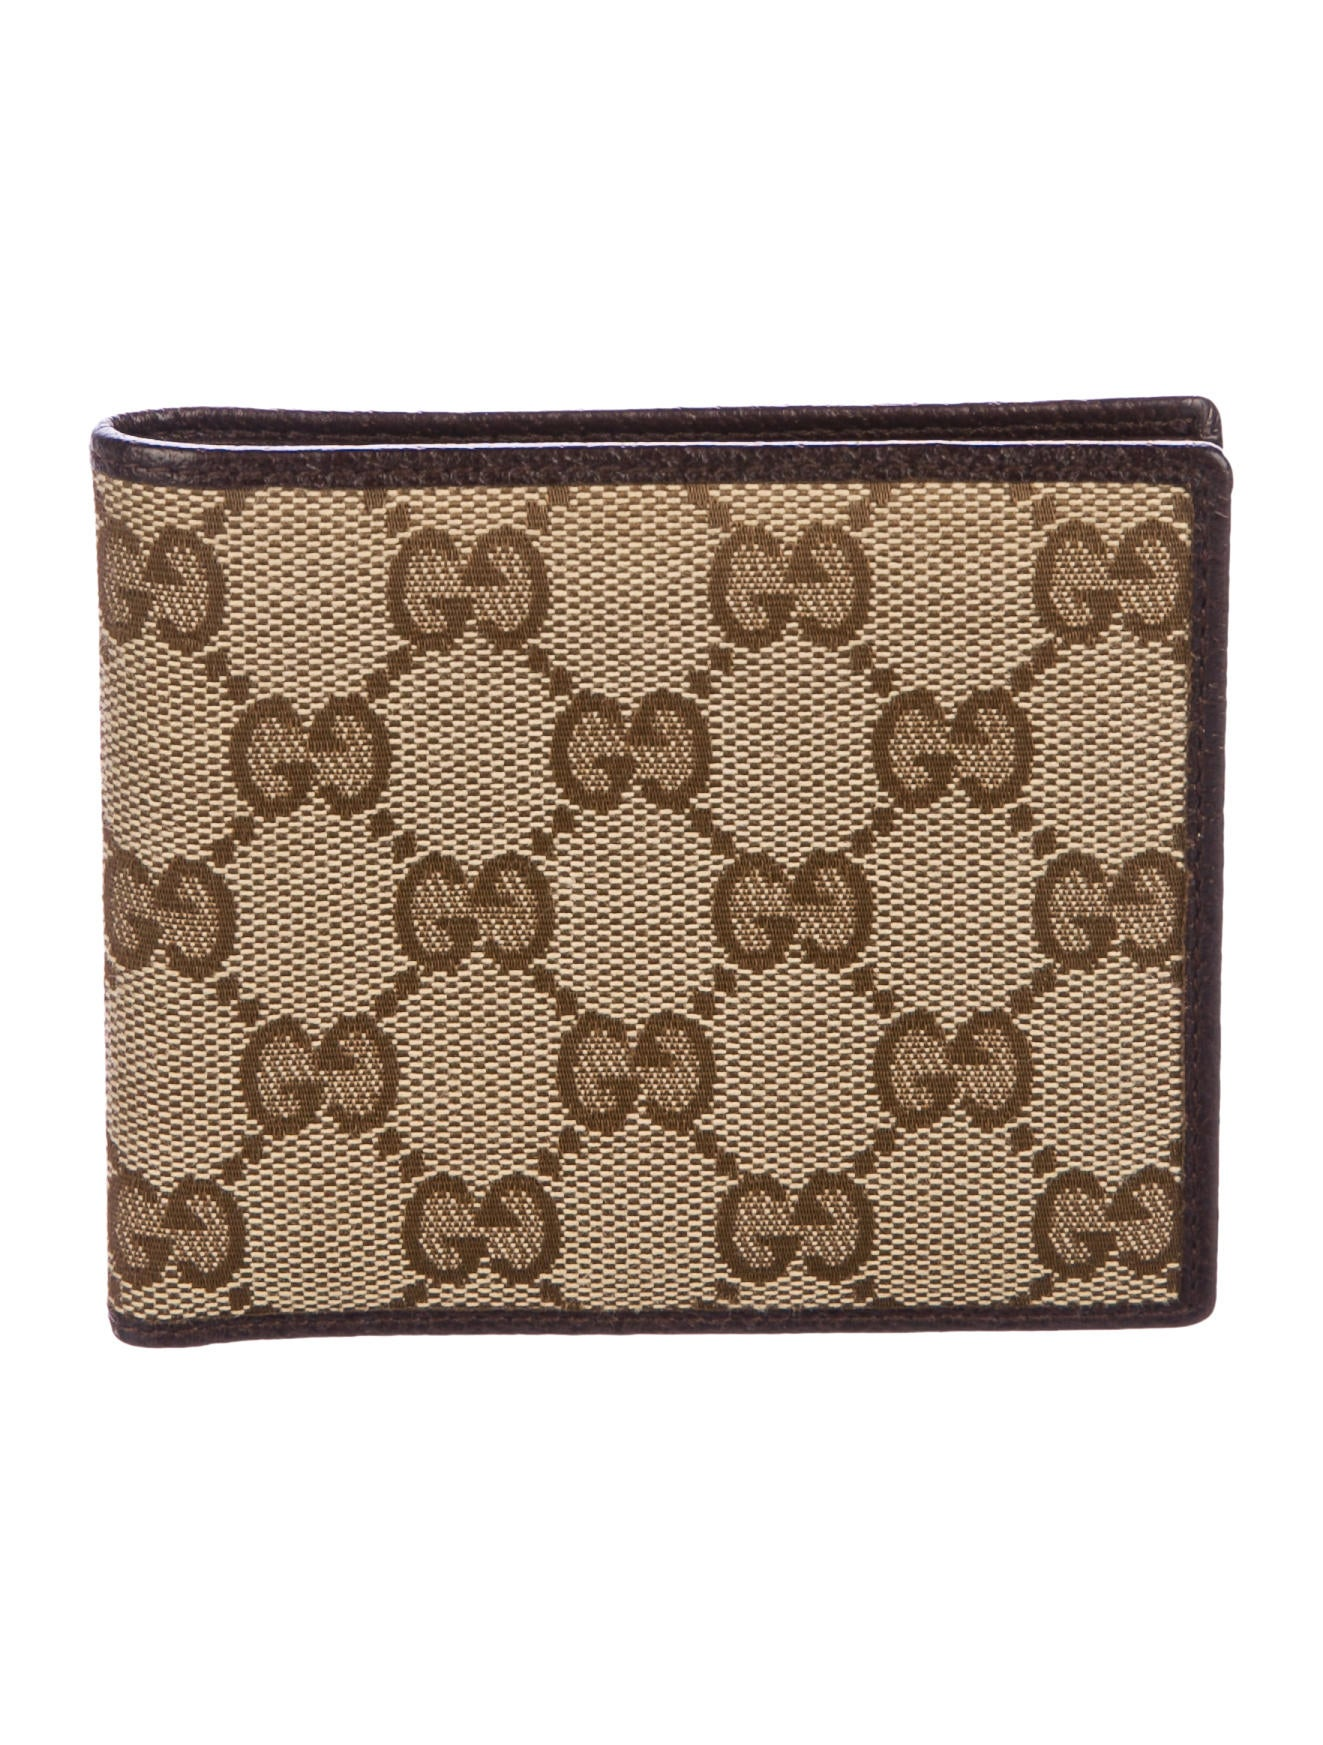 257210af7fe483 Gucci GG Canvas Bifold Wallet - Accessories - GUC224876 | The RealReal